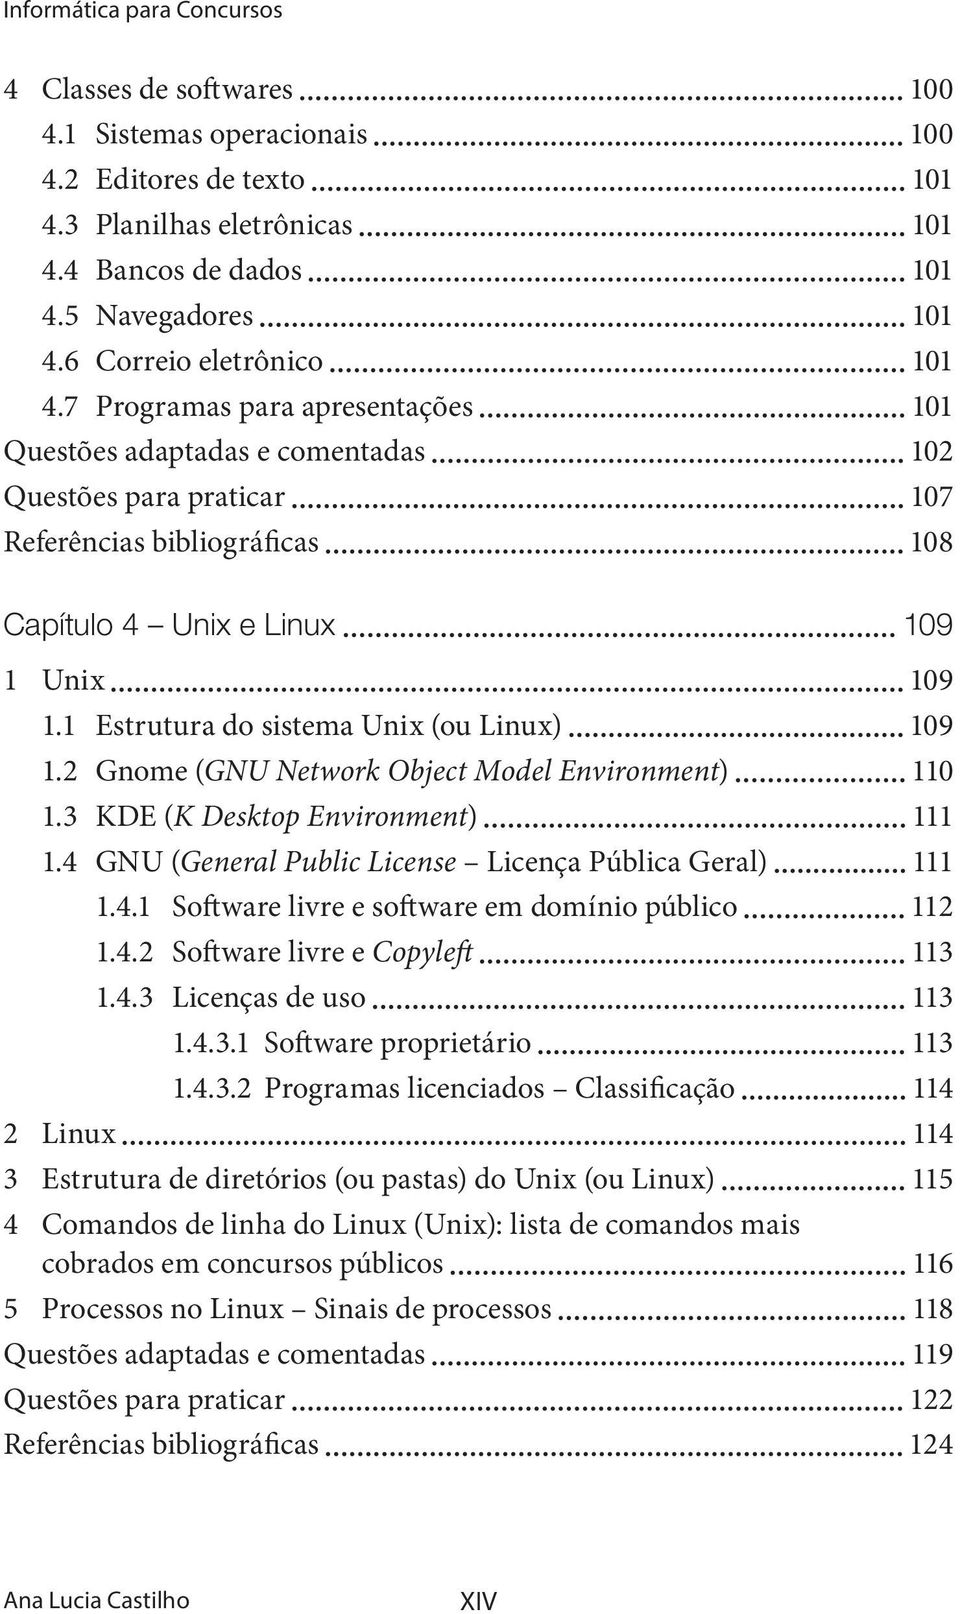 1 Estrutura do sistema Unix (ou Linux) 109 1.2 Gnome (GNU Network Object Model Environment) 110 1.3 KDE (K Desktop Environment) 111 1.4 GNU (General Public License Licença Pública Geral) 111 1.4.1 Software livre e software em domínio público 112 1.